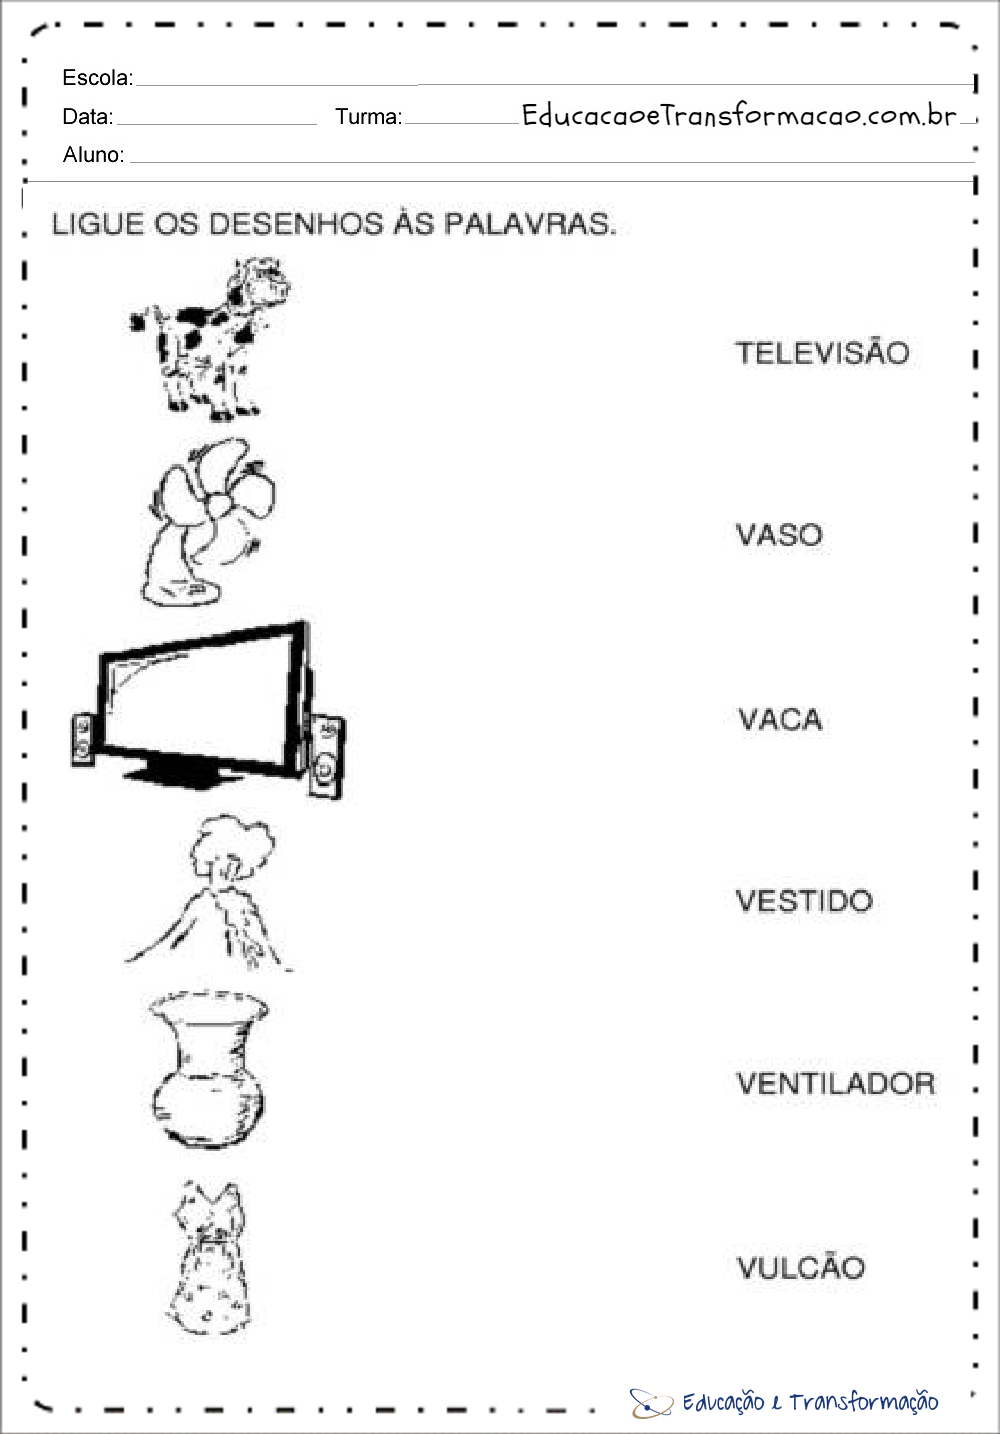 2144820604275438101 further Desenhos Para Colorir De Transito moreover A Fat Lot Of Good Part 2 in addition Index additionally Retinal. on trans